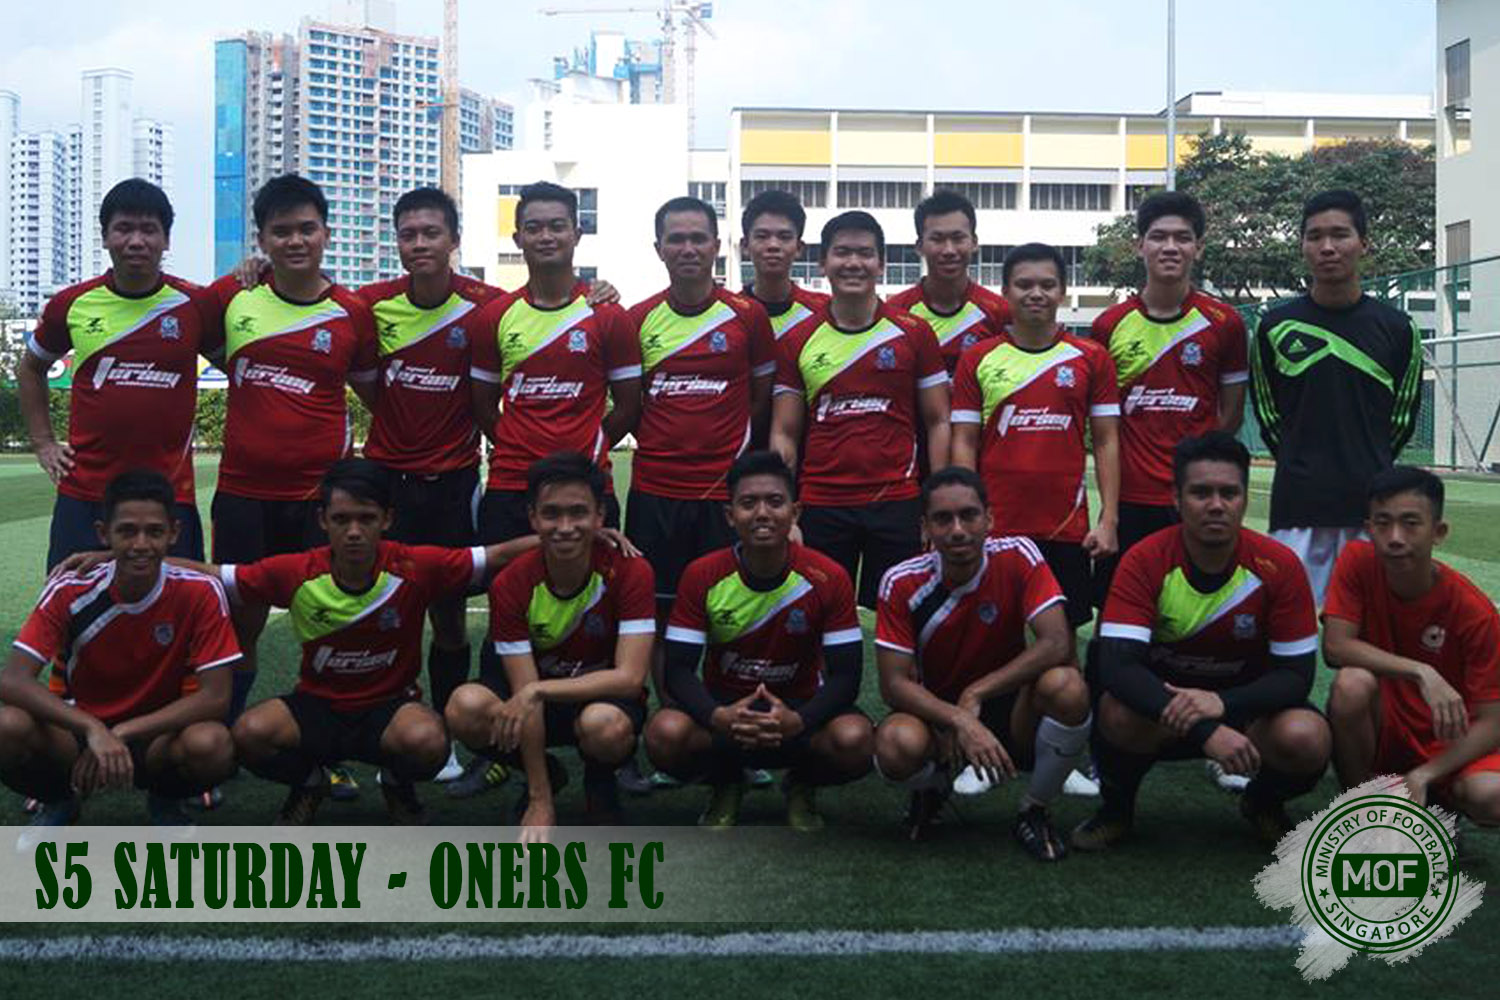 Oners FC